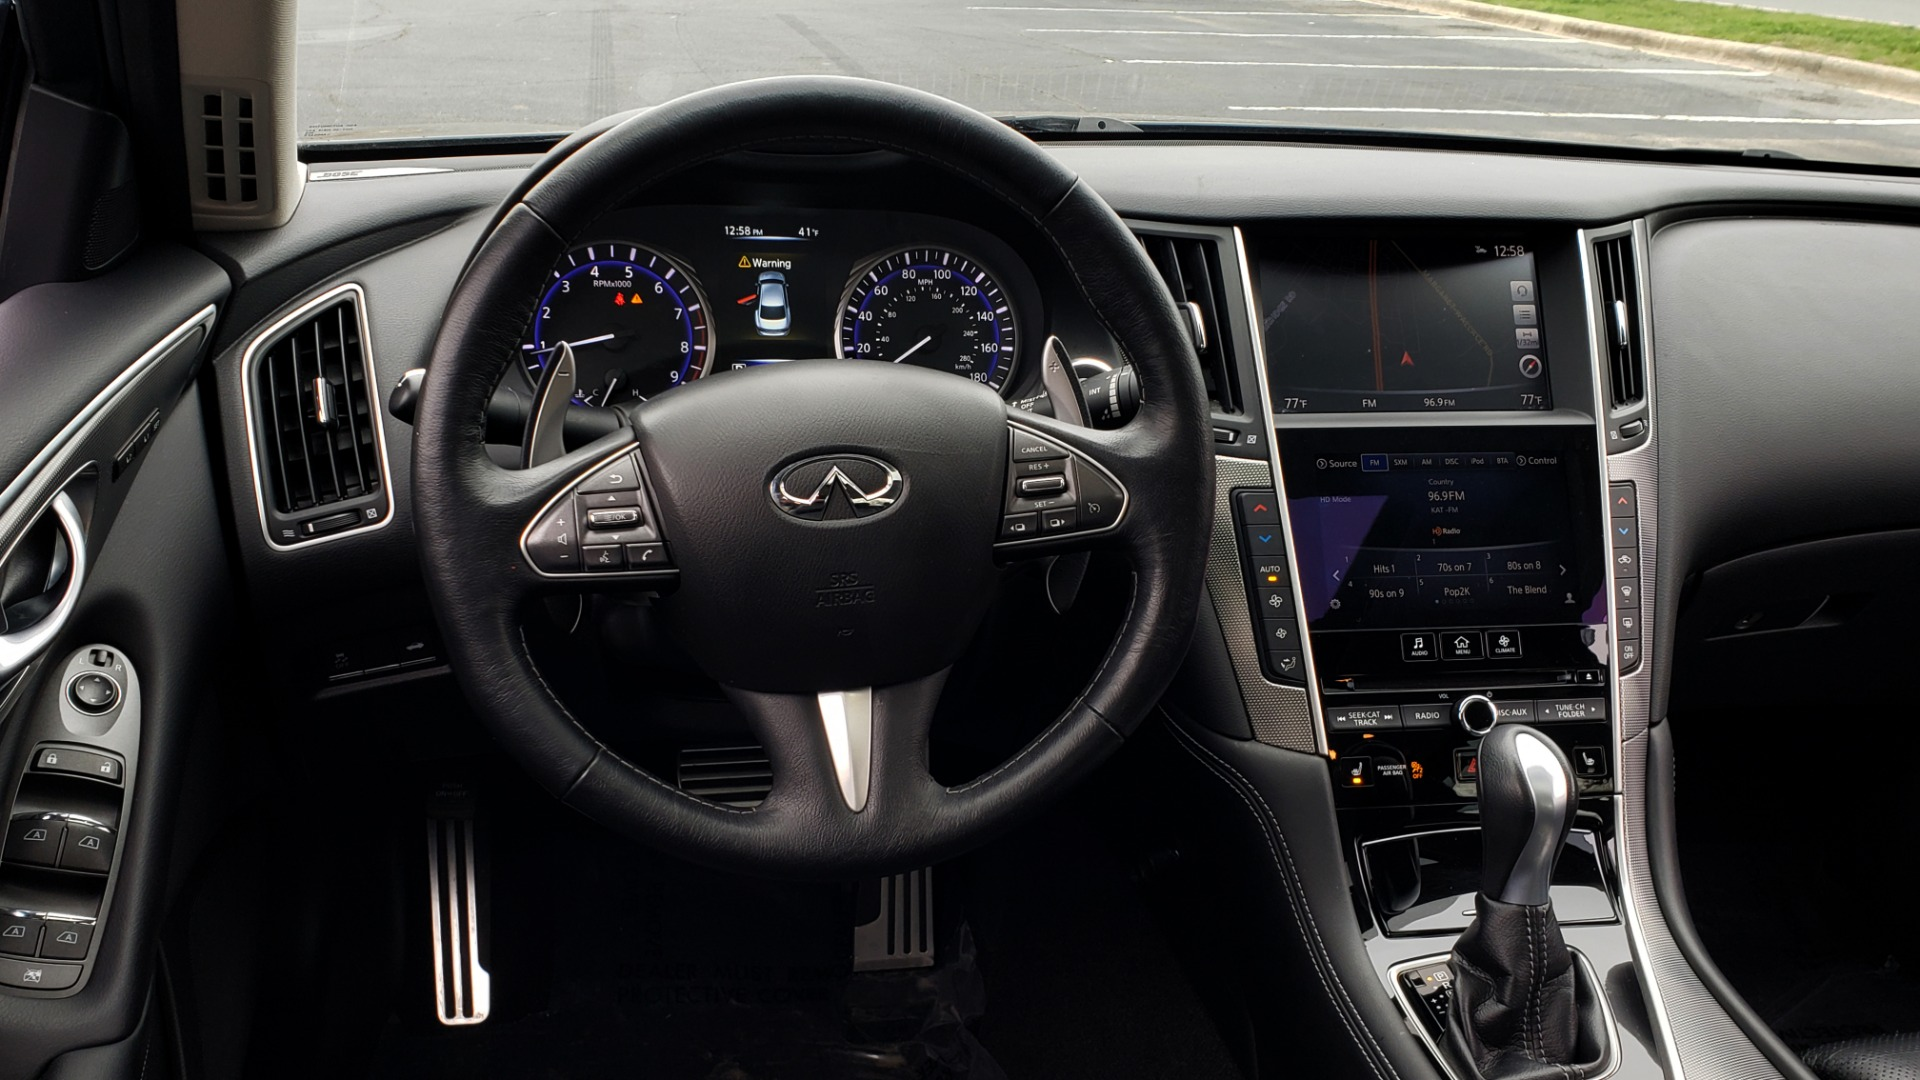 Used 2016 INFINITI Q50 3.0t PREMIUM SPORT AWD / NAV / SUNROOF / HTD STS / REARVIEW for sale Sold at Formula Imports in Charlotte NC 28227 40